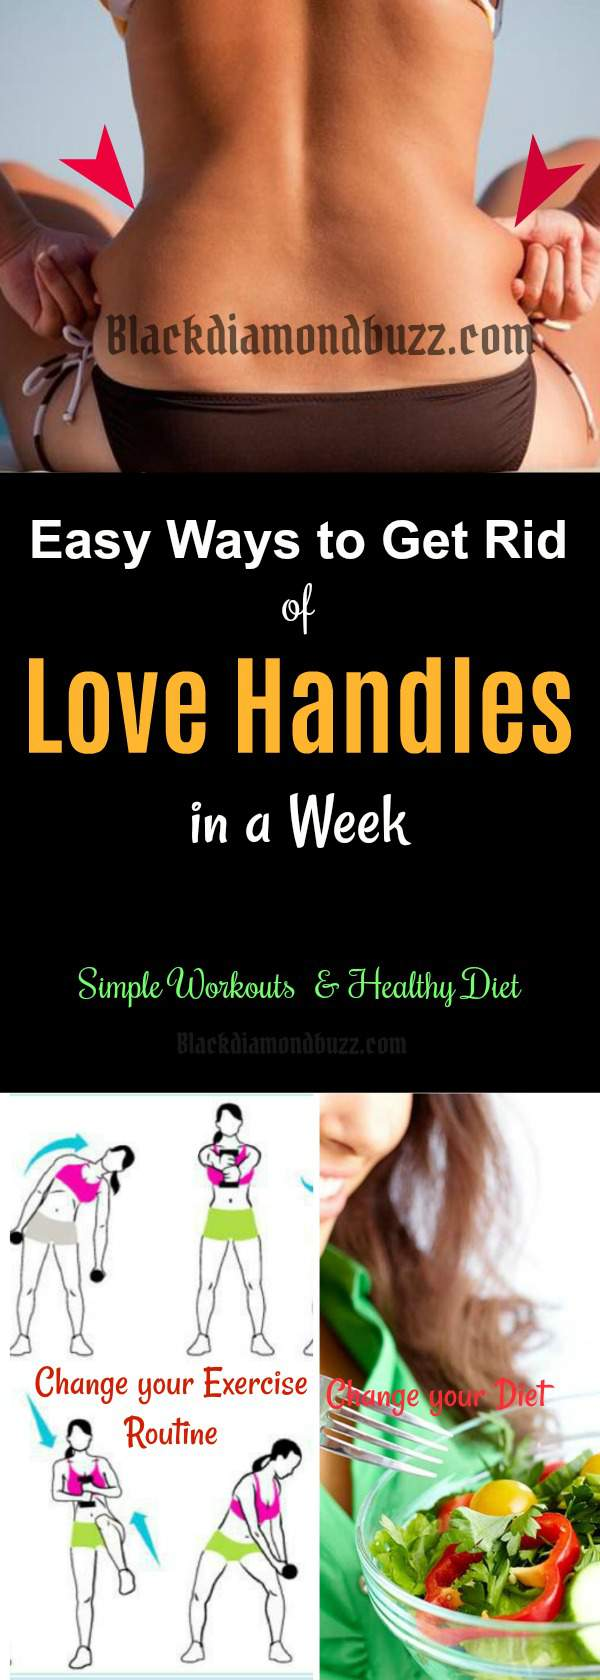 Workouts To Lose Love Handles In 2 Weeks | Workout ...